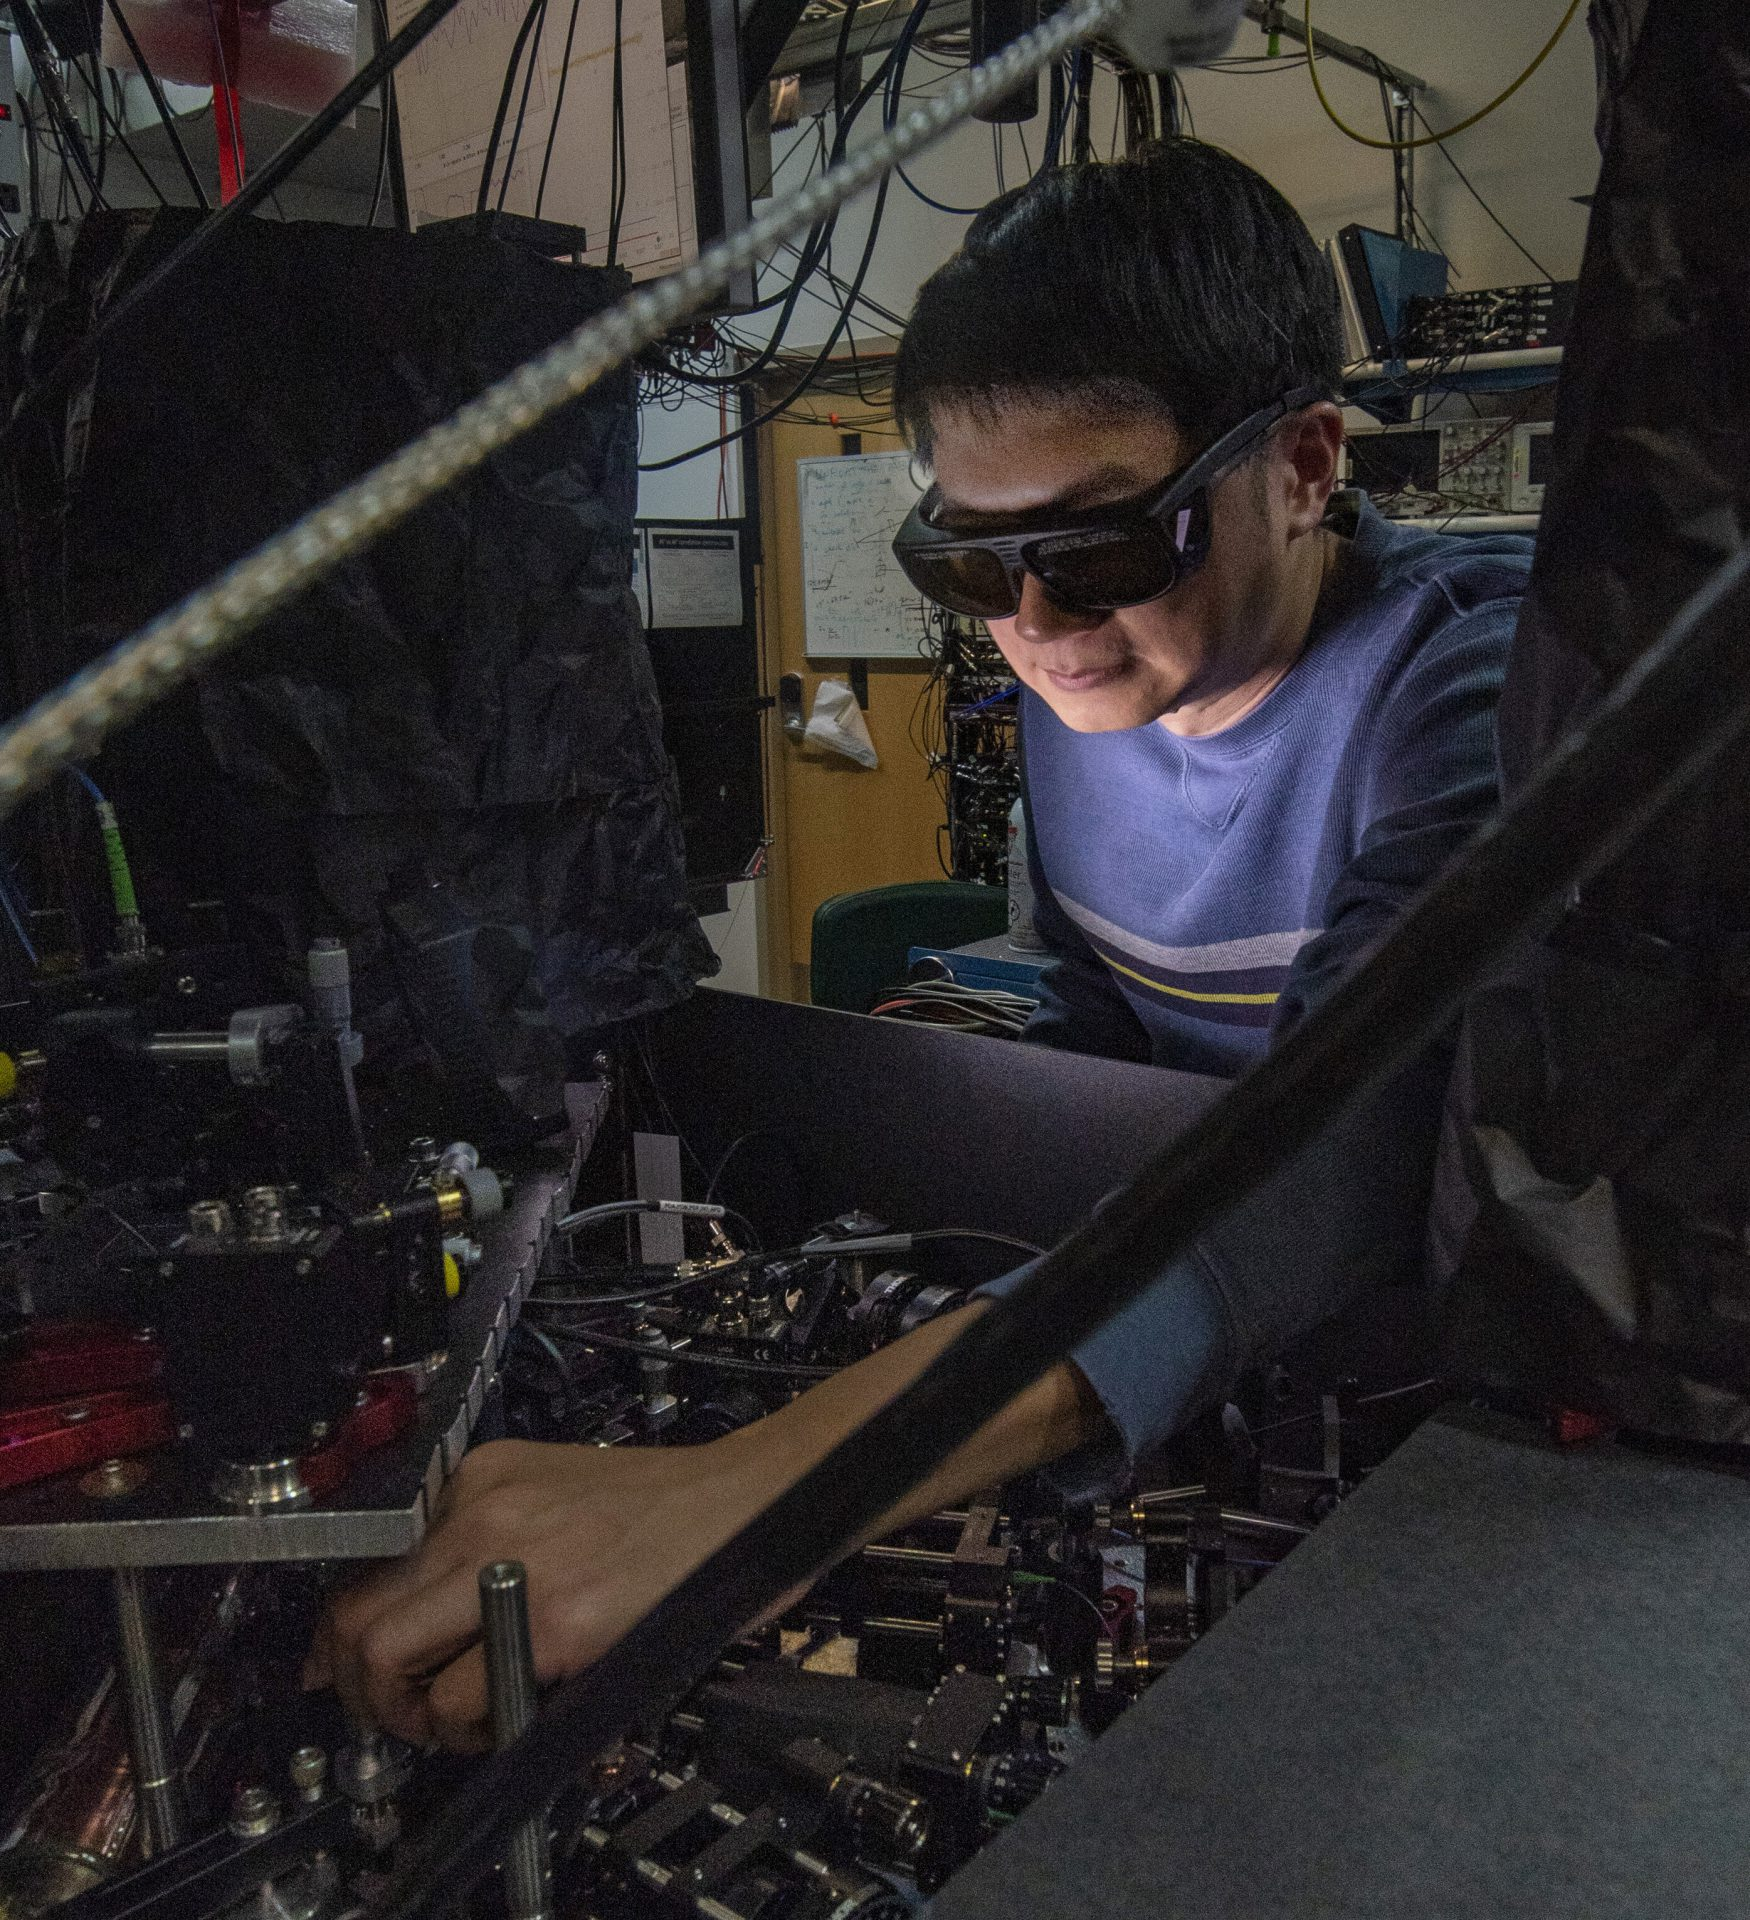 NIST physicist James Chin-wen Chou adjusts one of the laser beams used to manipulate an atom and a molecule in experiments that could help build hybrid quantum information systems. Credit: Burrus/NIST